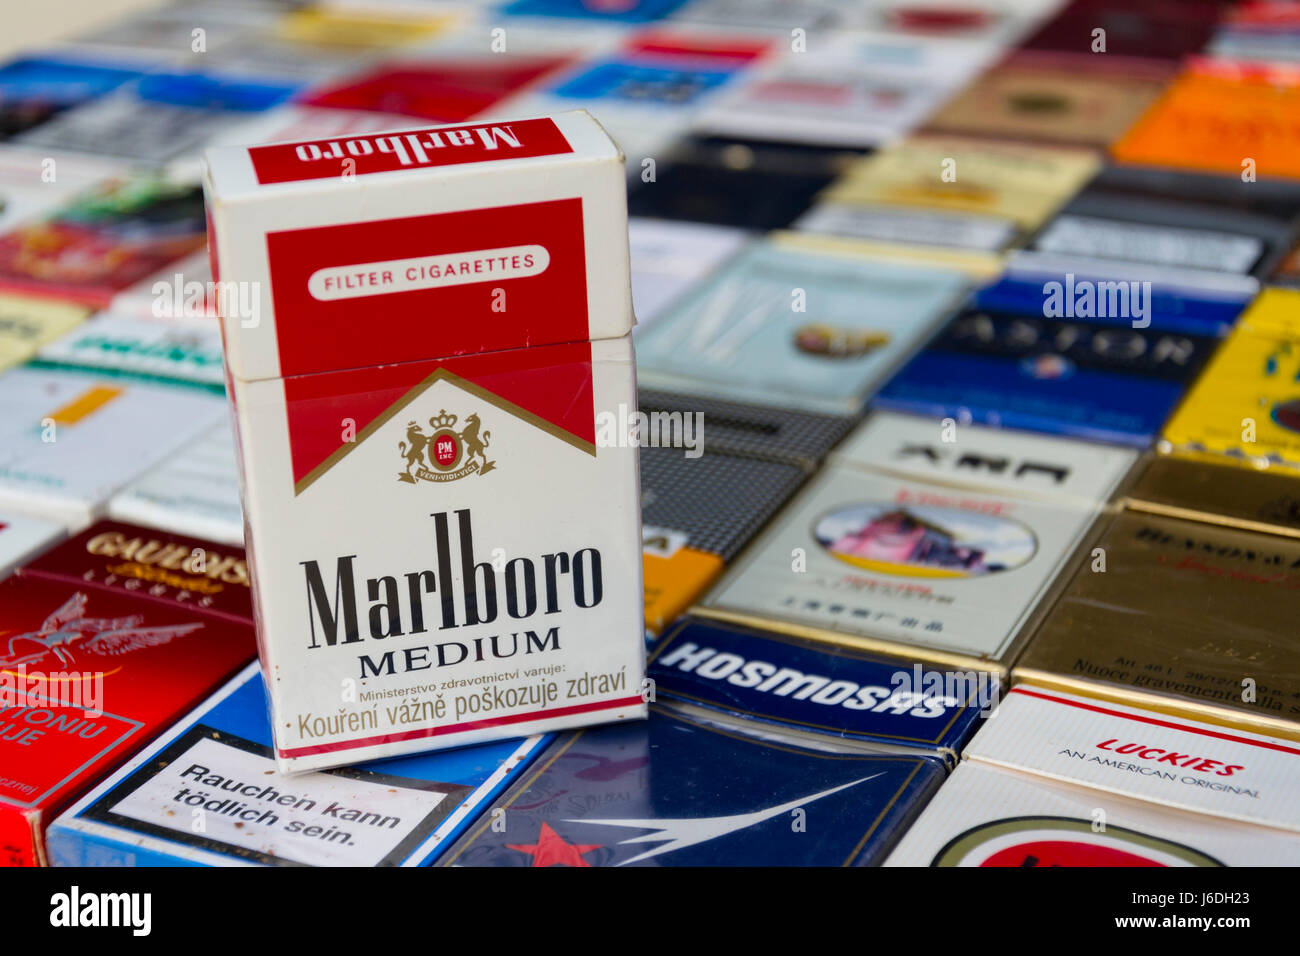 Where buy cigarettes Marlboro online in the UK